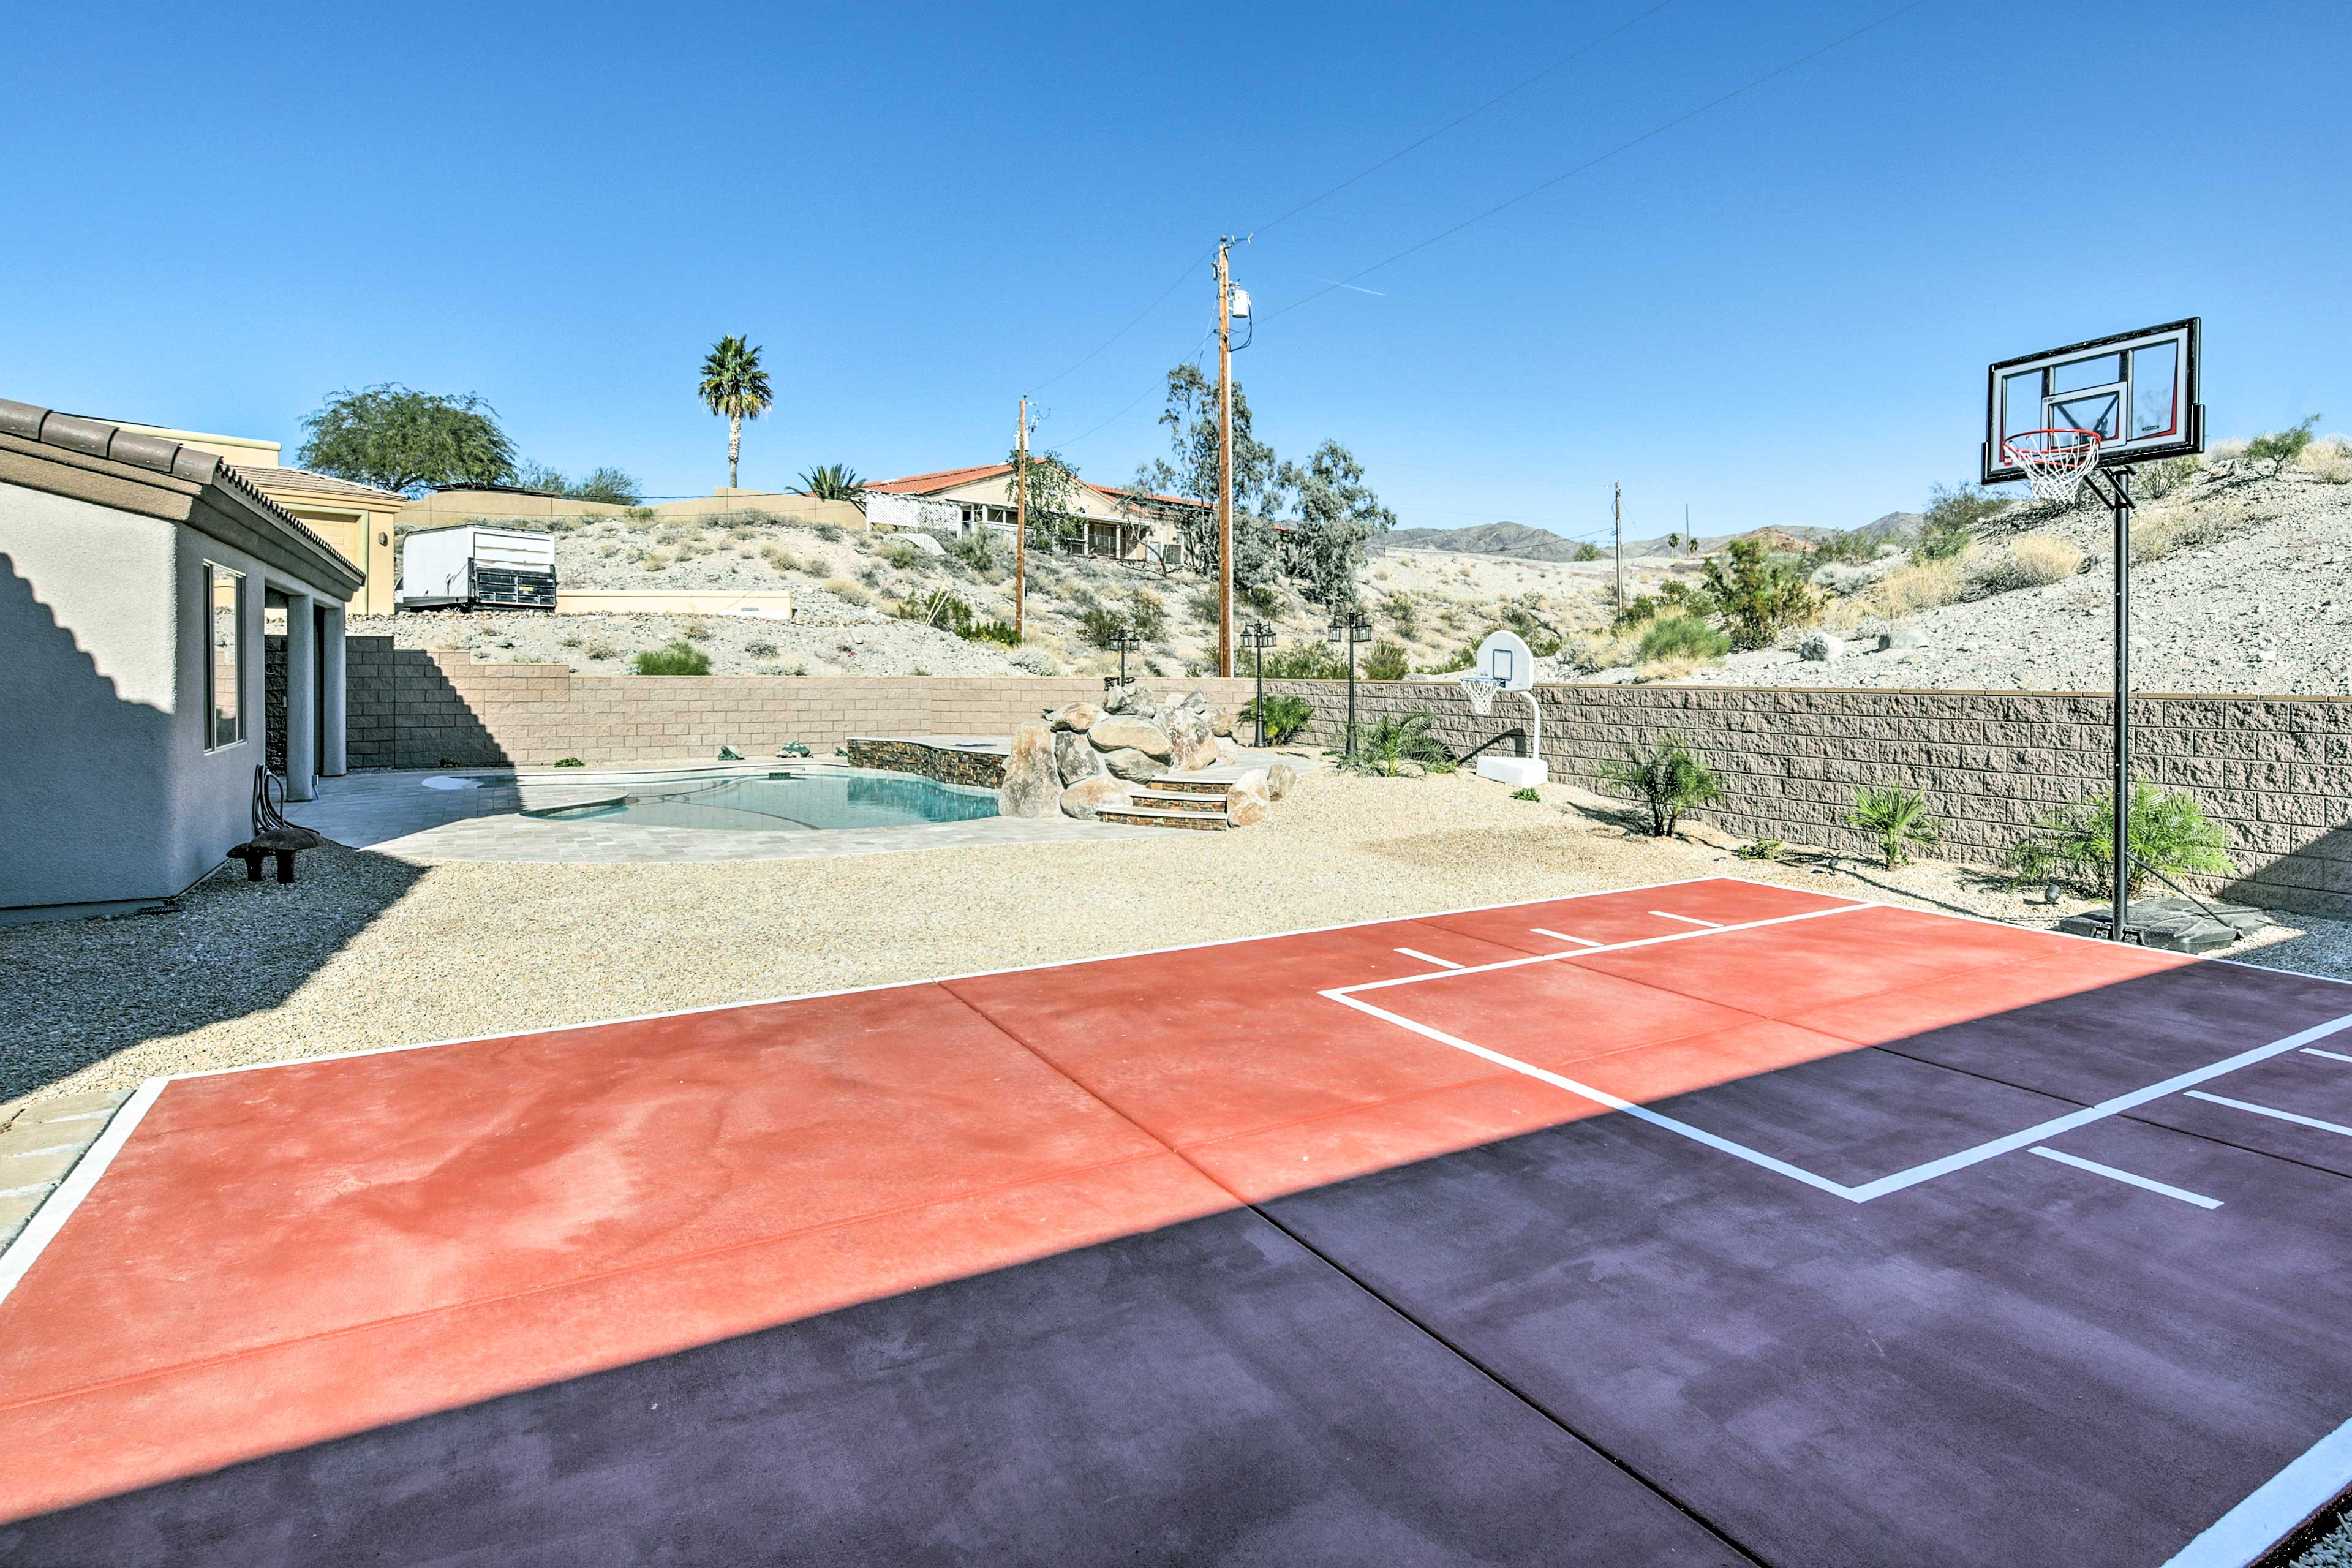 Let the kids work off some energy on the private basketball court.